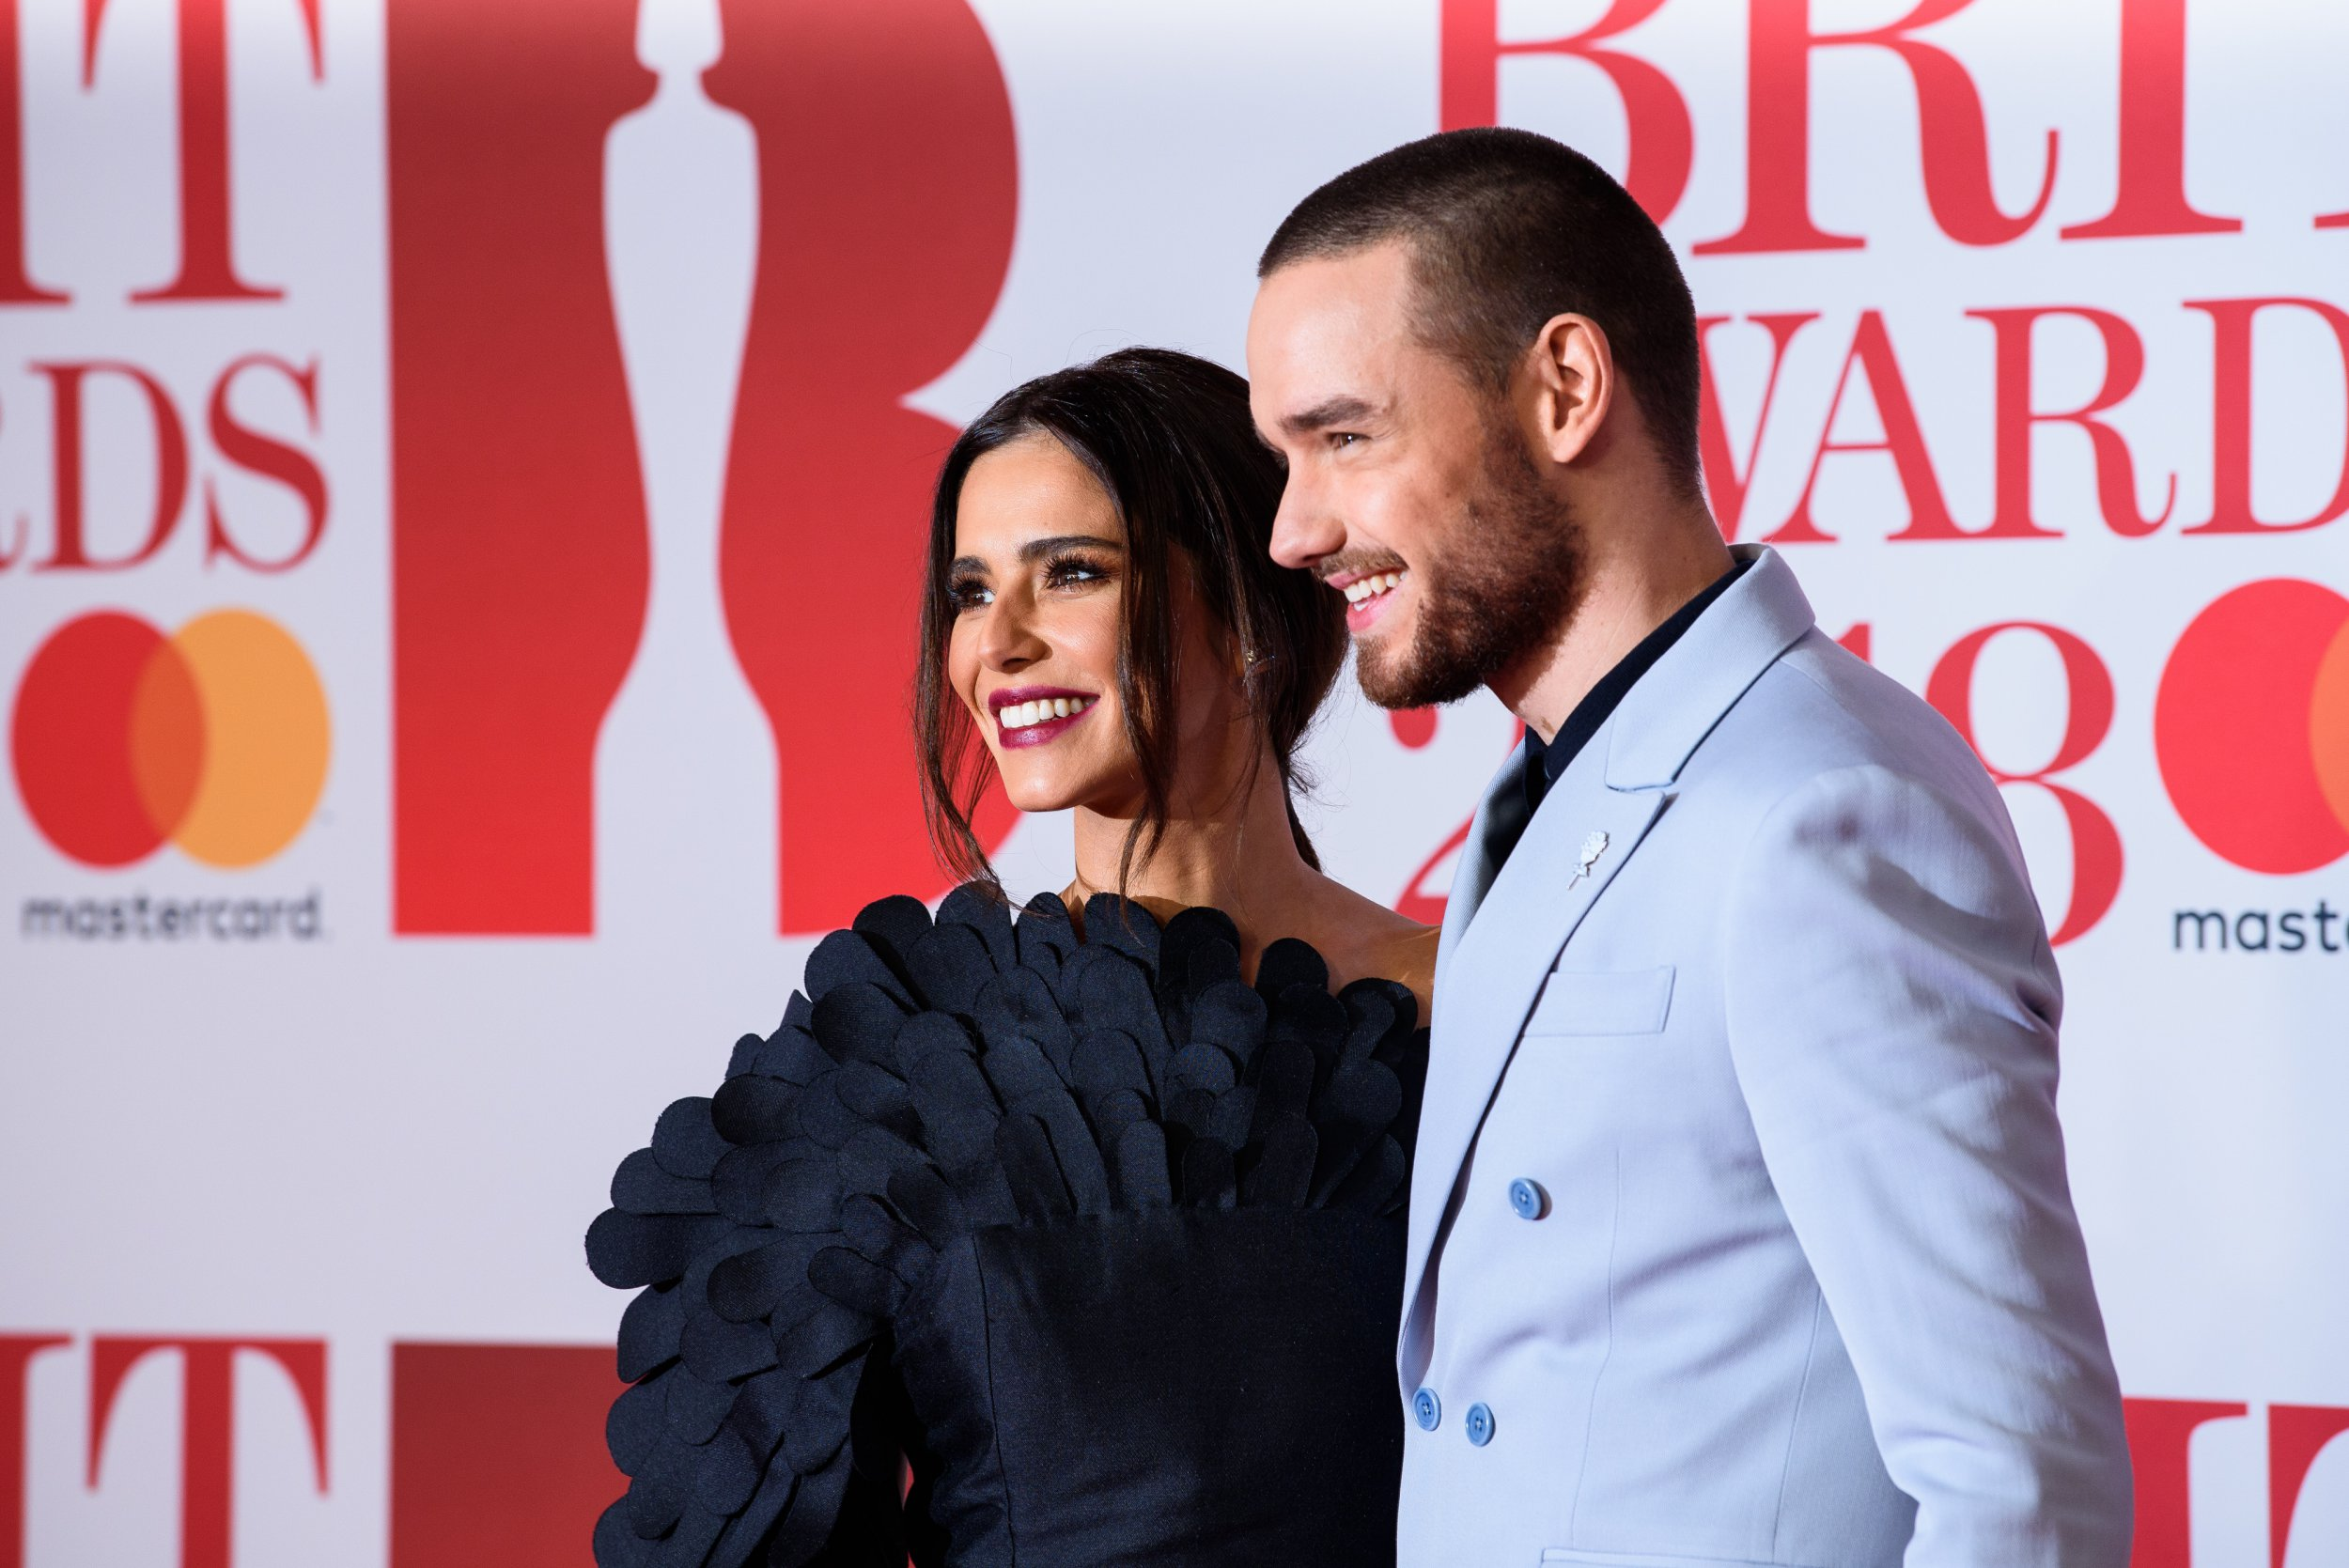 Liam Payne wants us to know that he and Cheryl are 'so normal' and pretty boring apparently